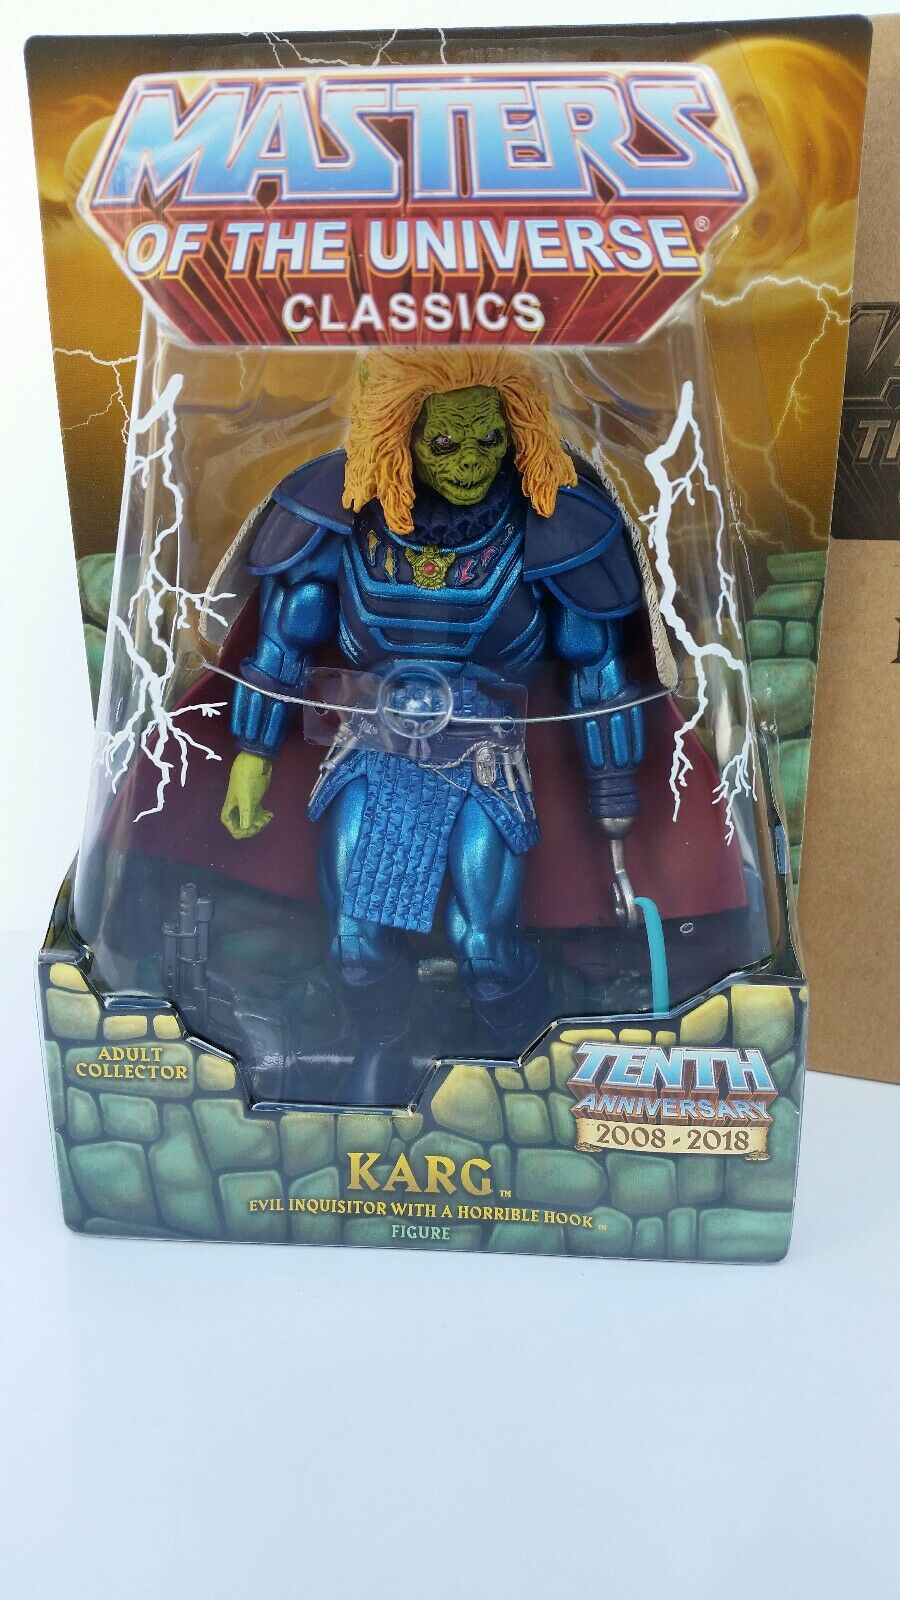 HE-MAN MOTU CLASSICS 2018 Super 7 KARG 7  Action Figure - BRAND NEW  MISB